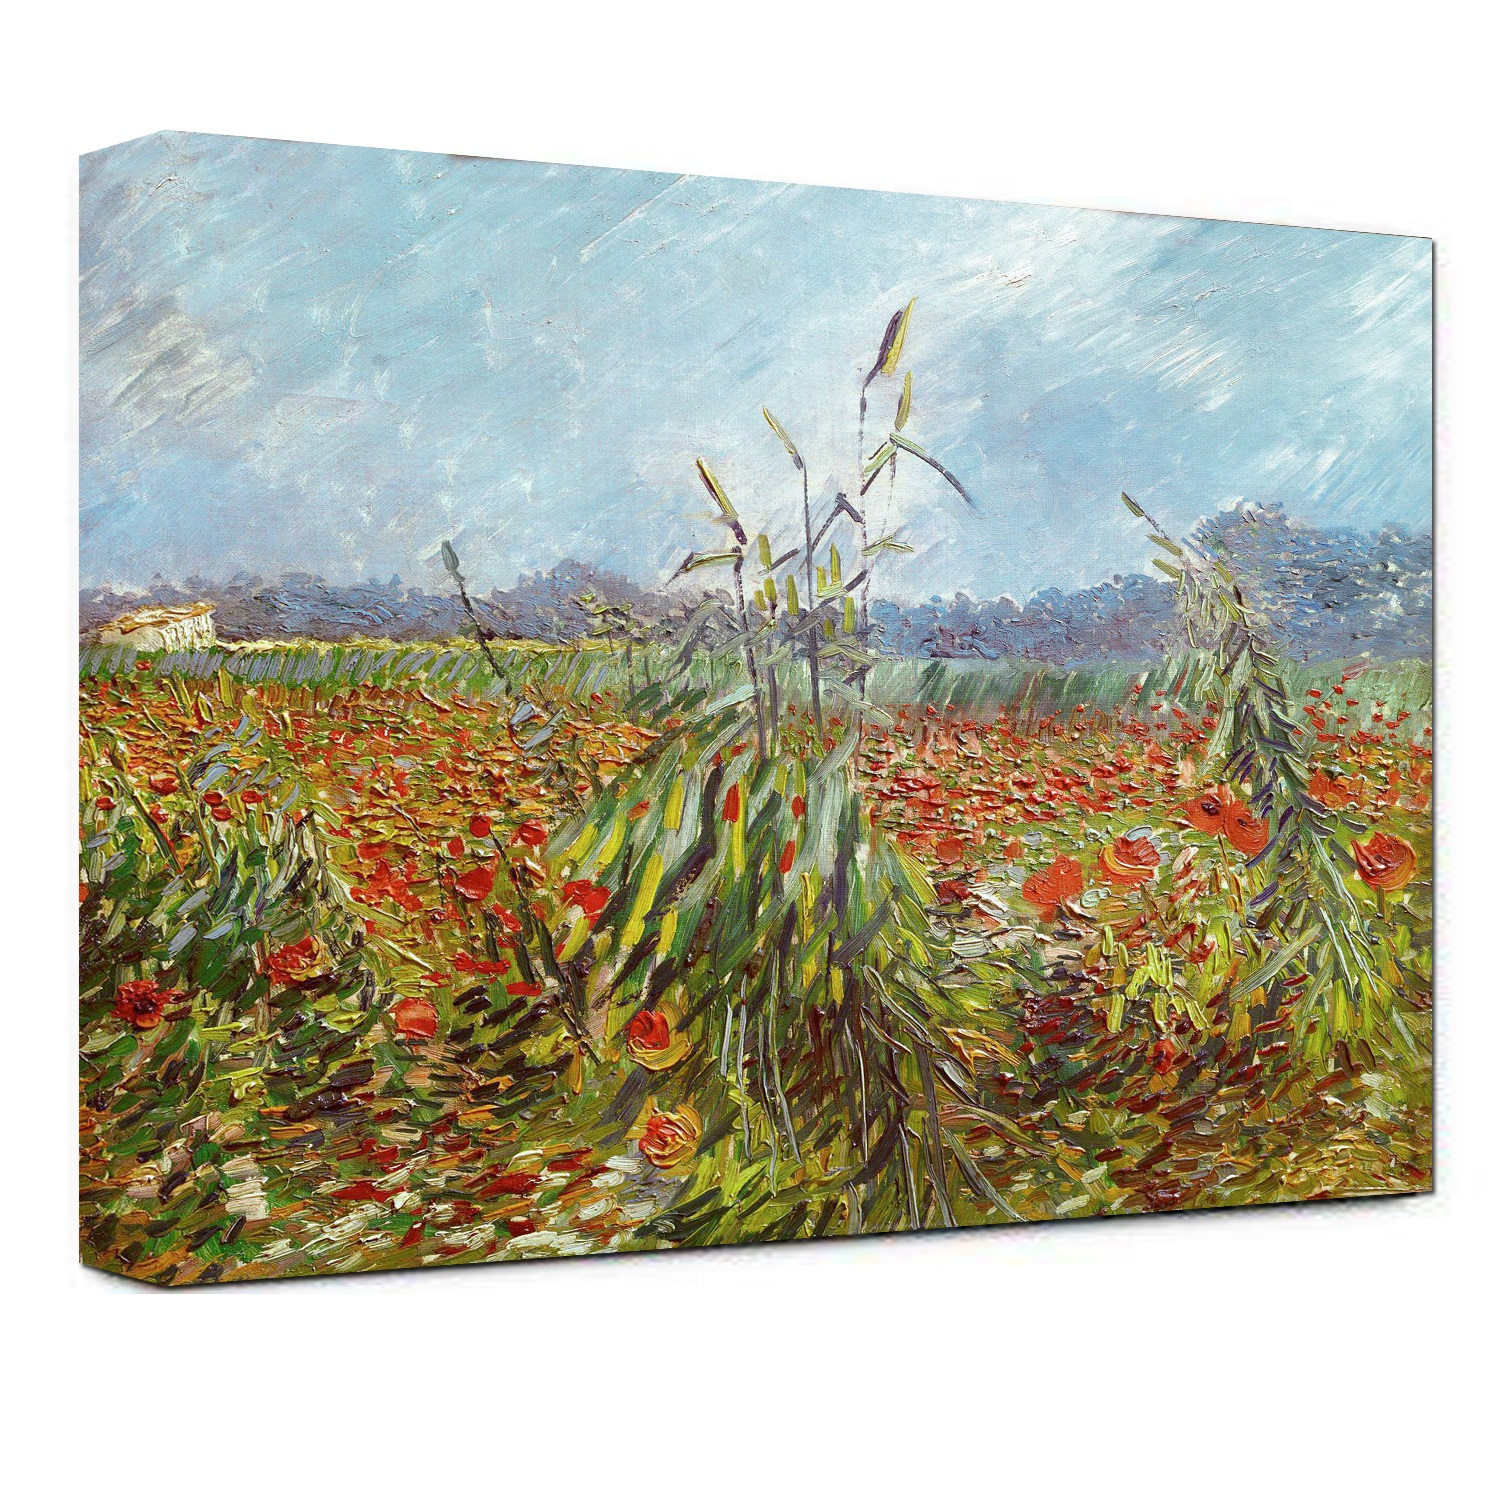 Hand Painted Green Ears of Wheat by Vincent Van Gogh oil painting-Landscape Canvas Wall Art